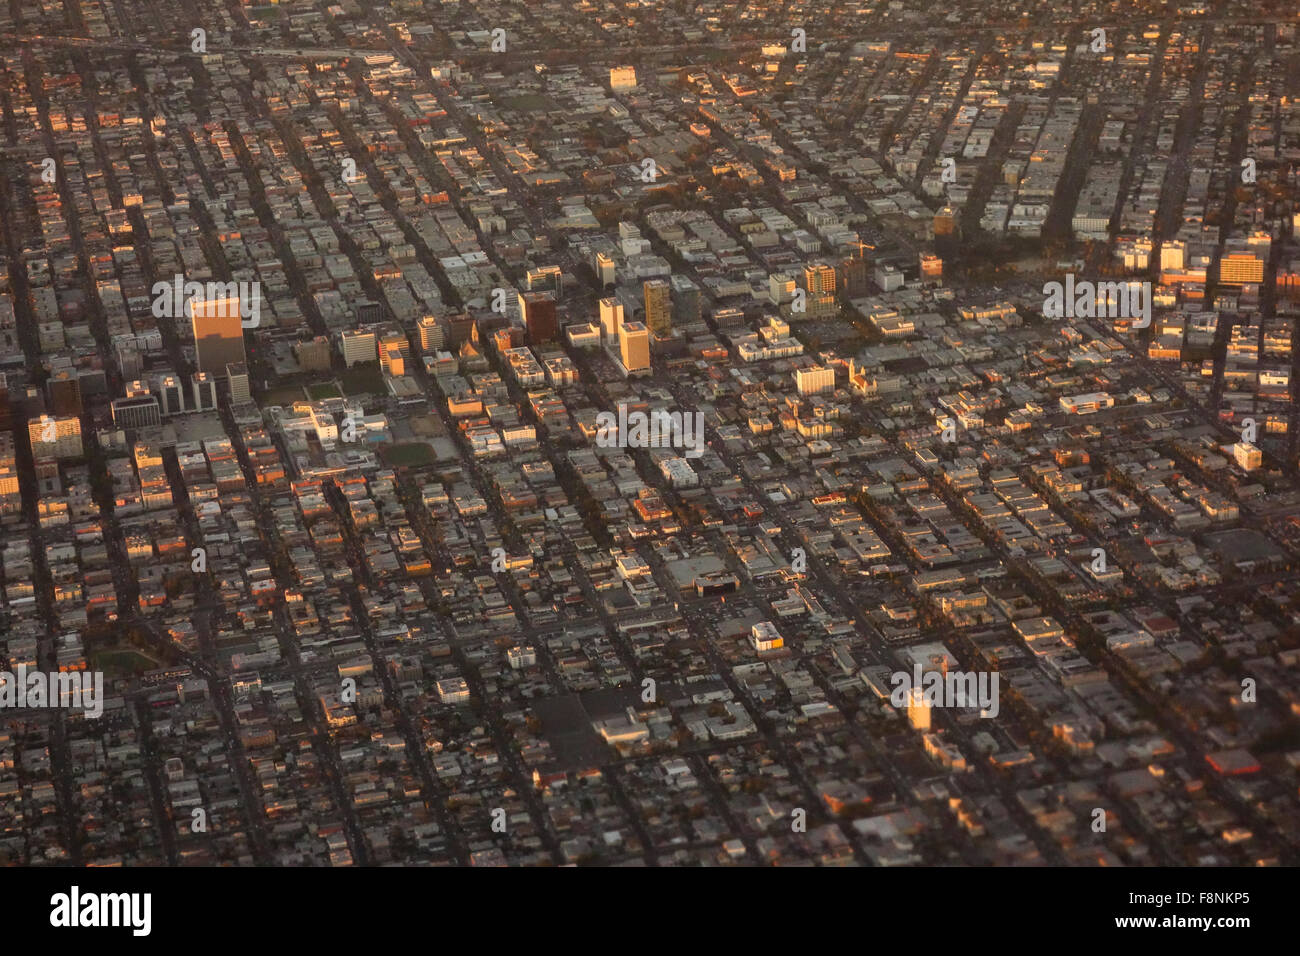 urban sprawl of city of Los Angeles from the air Southern California USA - Stock Image